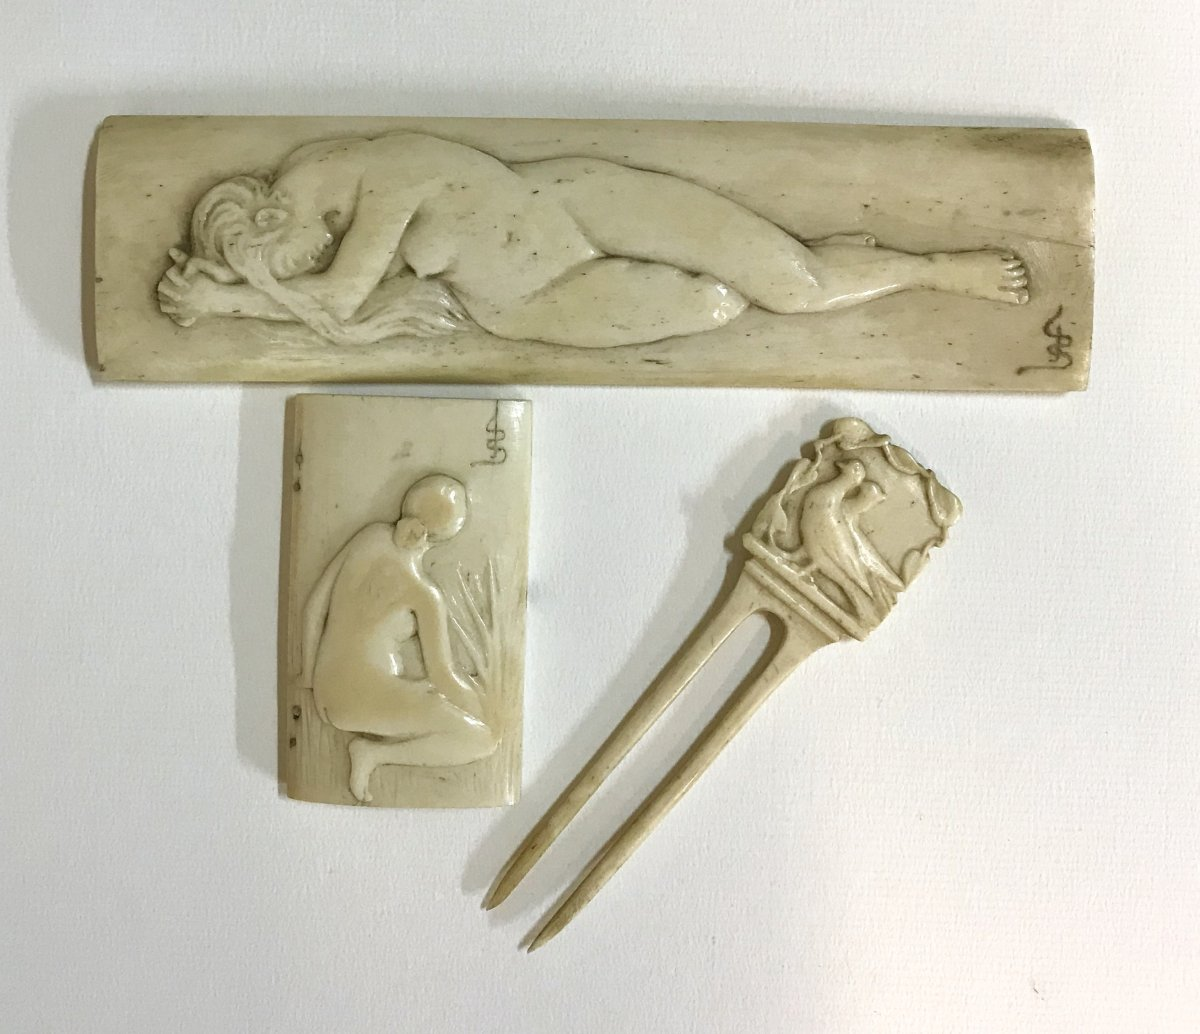 Art Nouveau Hairpin And 2 Low Reliefs Bone Carved Decor From Nude Women Circa1890 Teeth Bone Ivory